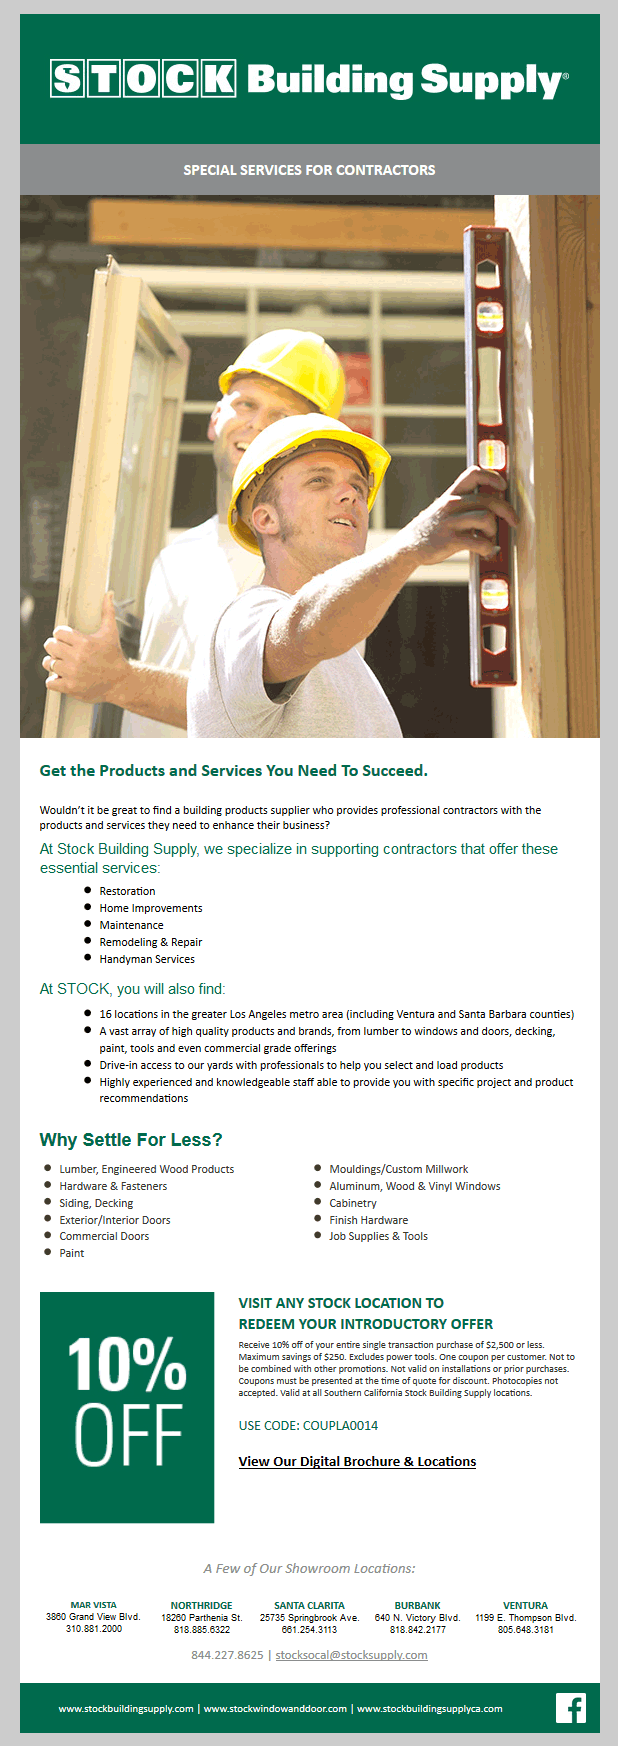 Special services for contractors email